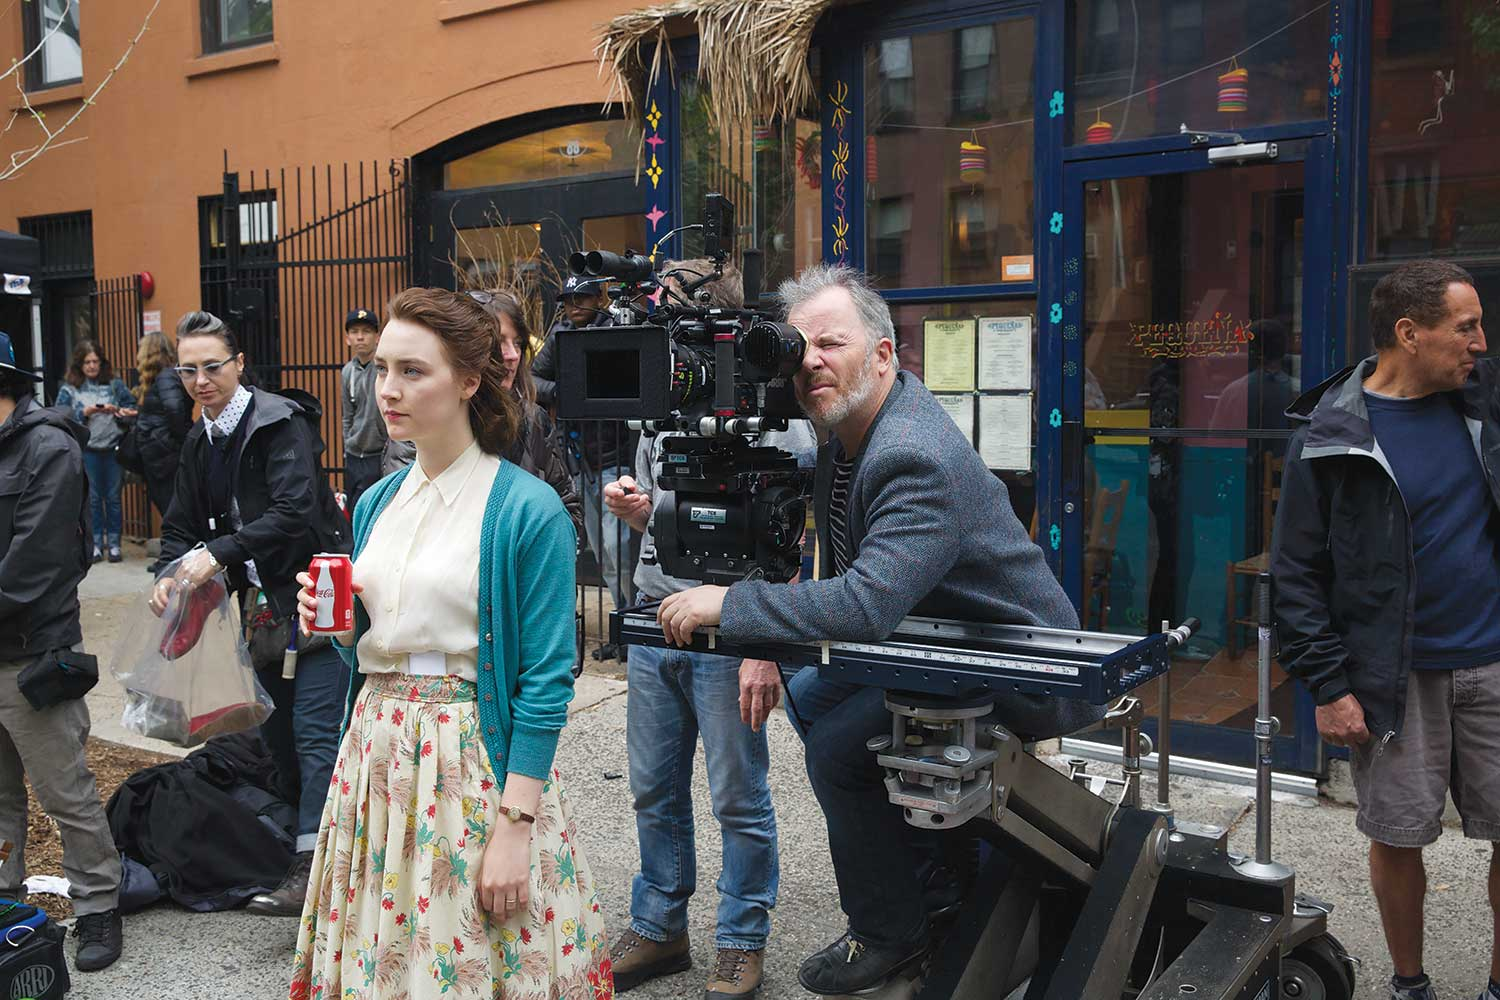 Yves Bélanger shoots while actress Saiorse Ronan doesn't try to hide her product placement.